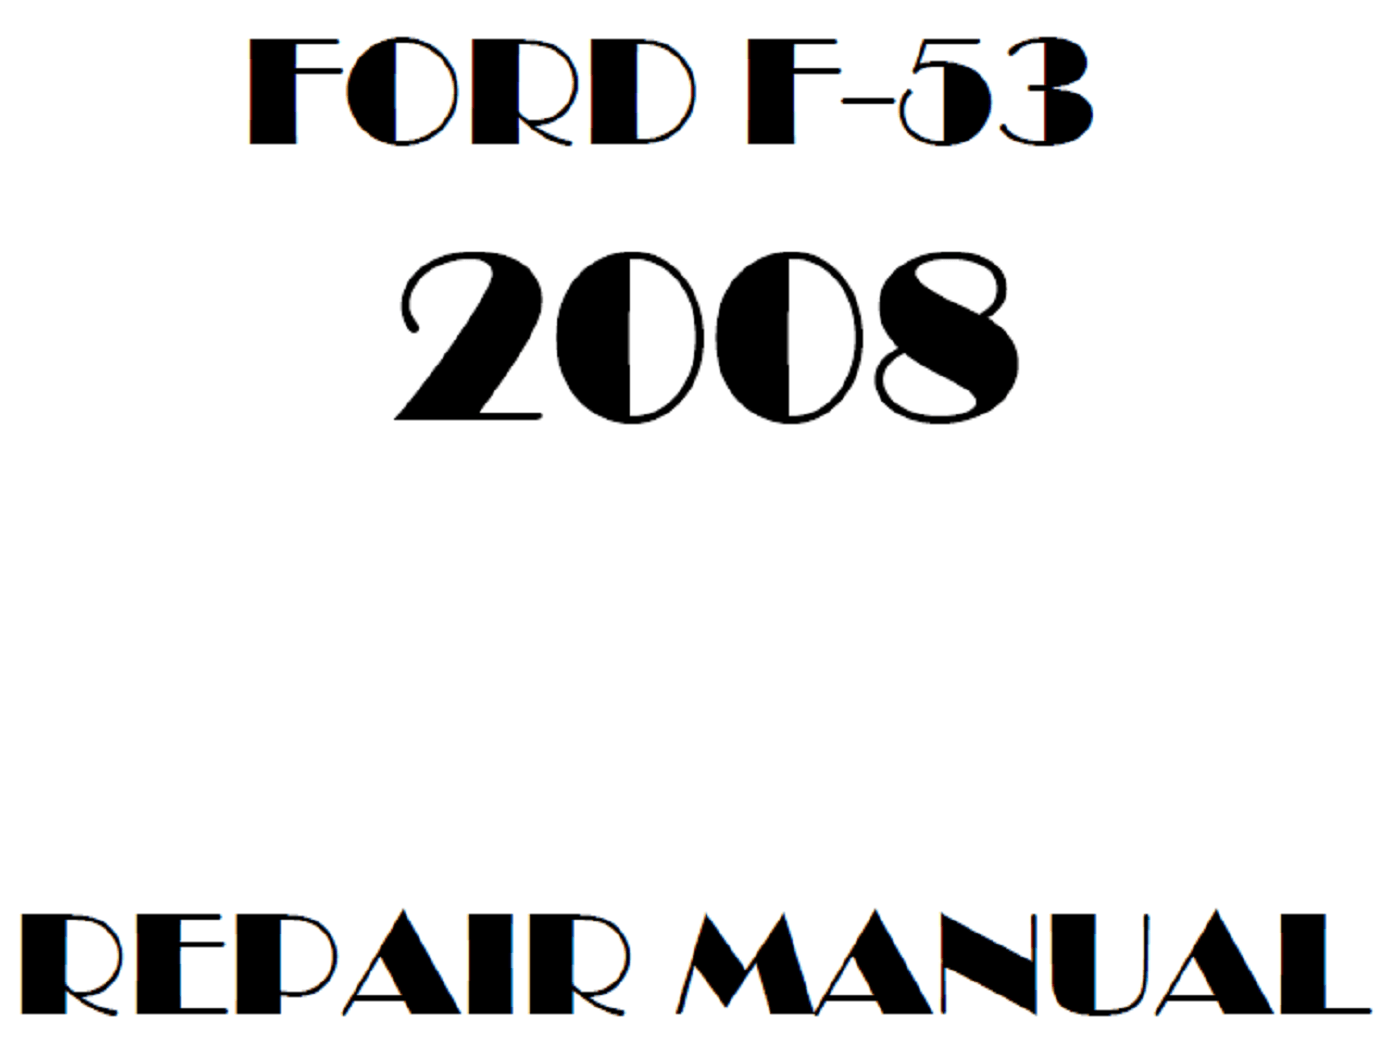 2008 Ford F53 repair manual